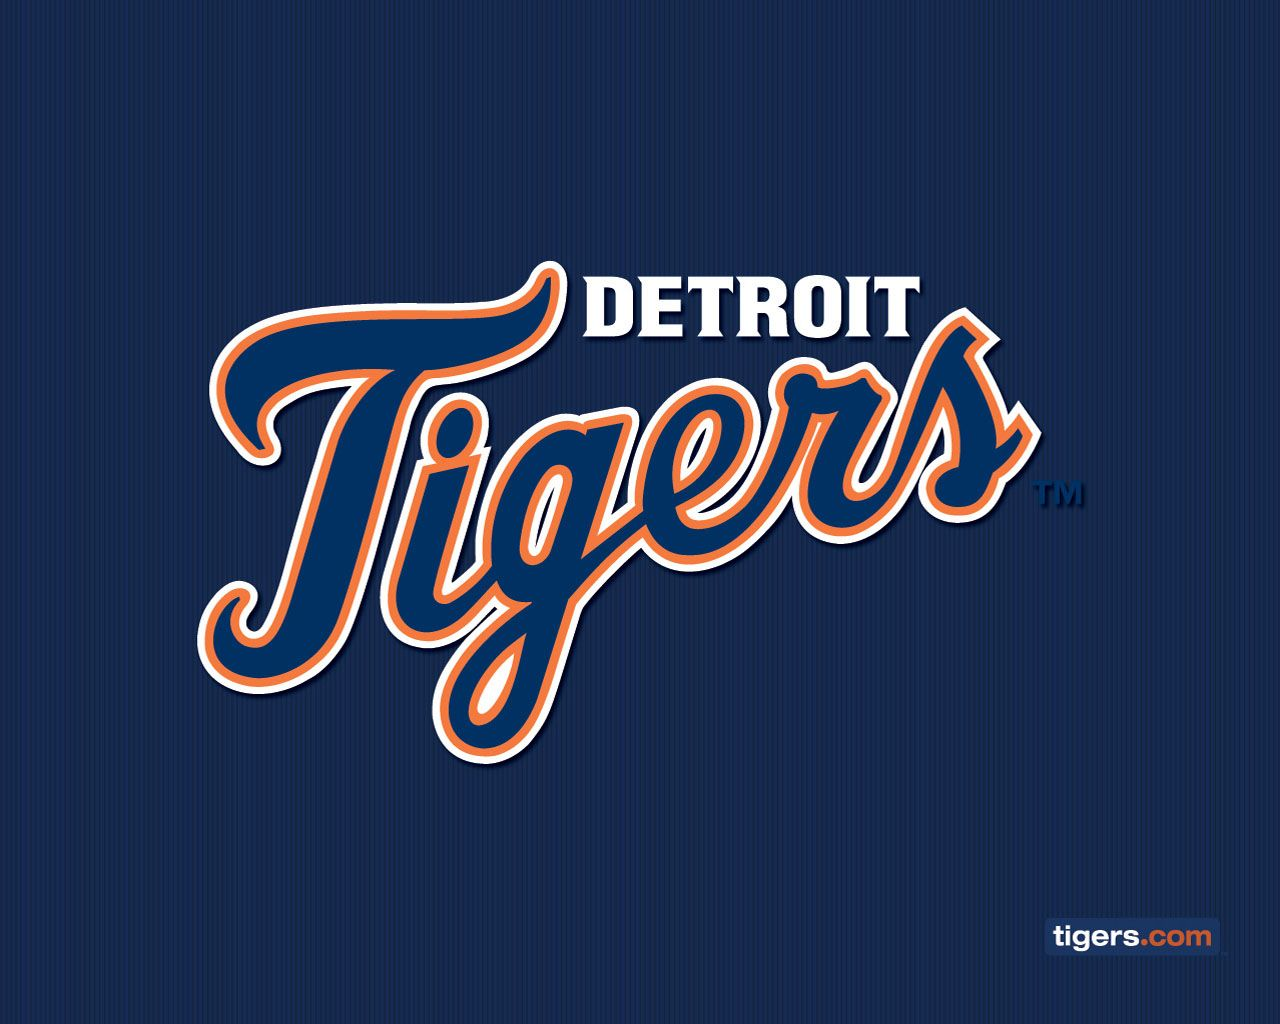 Baseball Detroit Tigers Iphone Wallpaper 1600 1067 Detroit Tigers Background 42 Wallpapers Adorable Wallpa Detroit Tigers Detroit Tigers Baseball Detroit